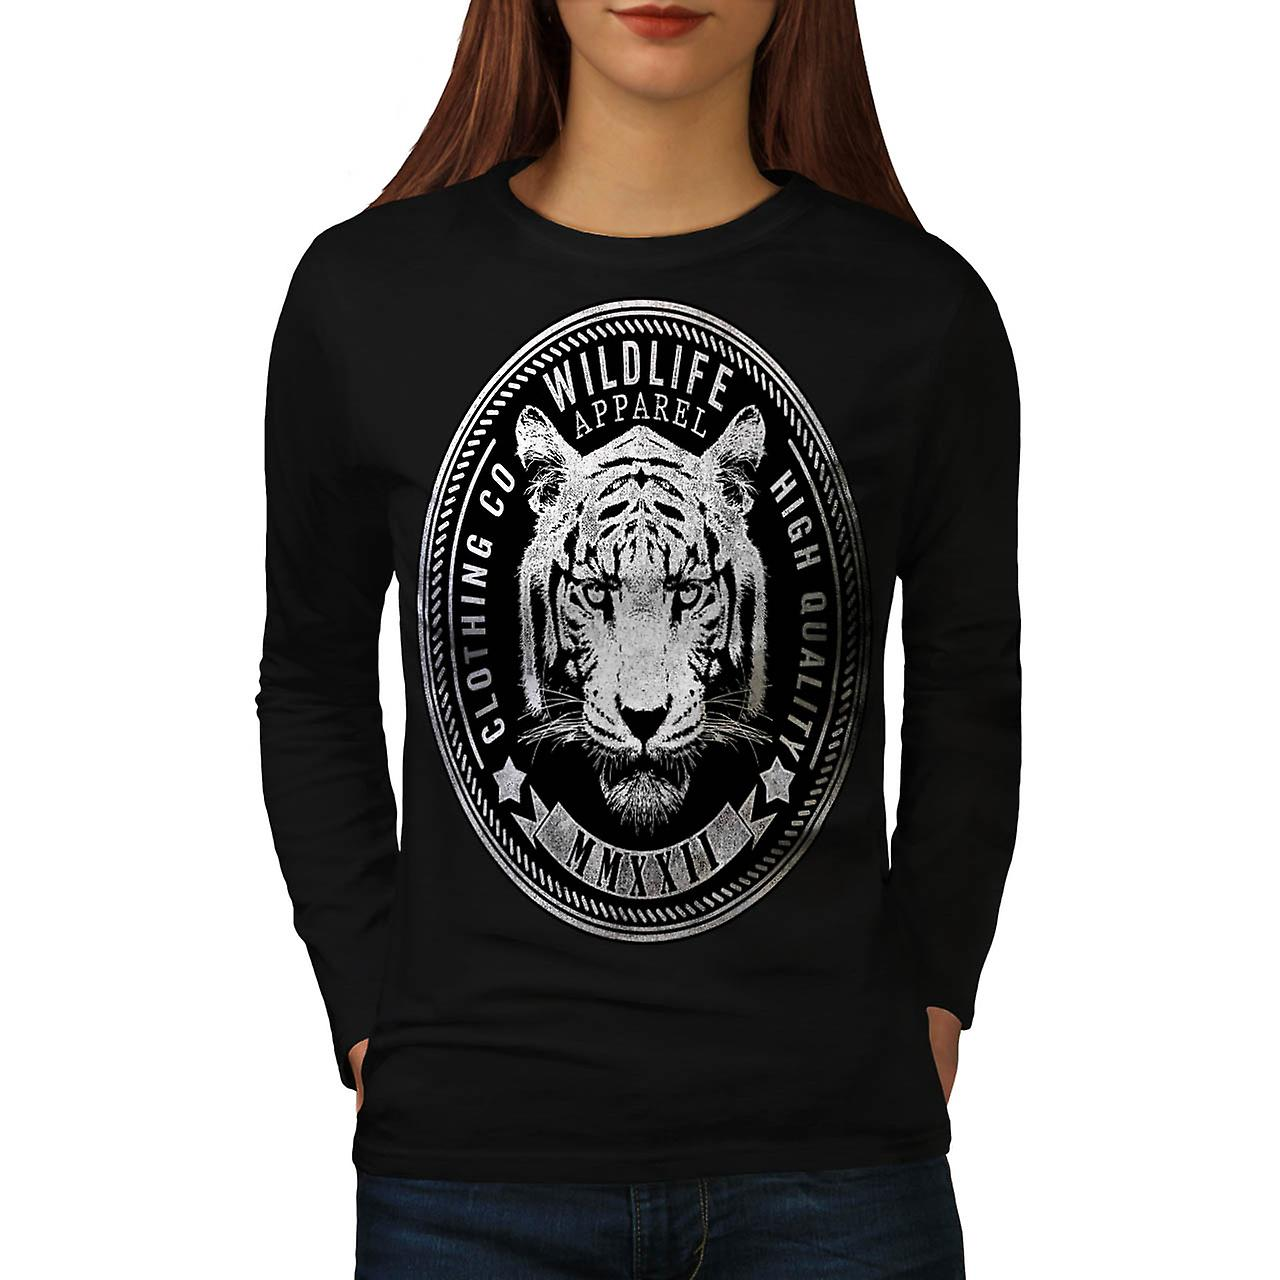 Wildlife Apparel USA Tiger Face Women Black Long Sleeve T-shirt | Wellcoda